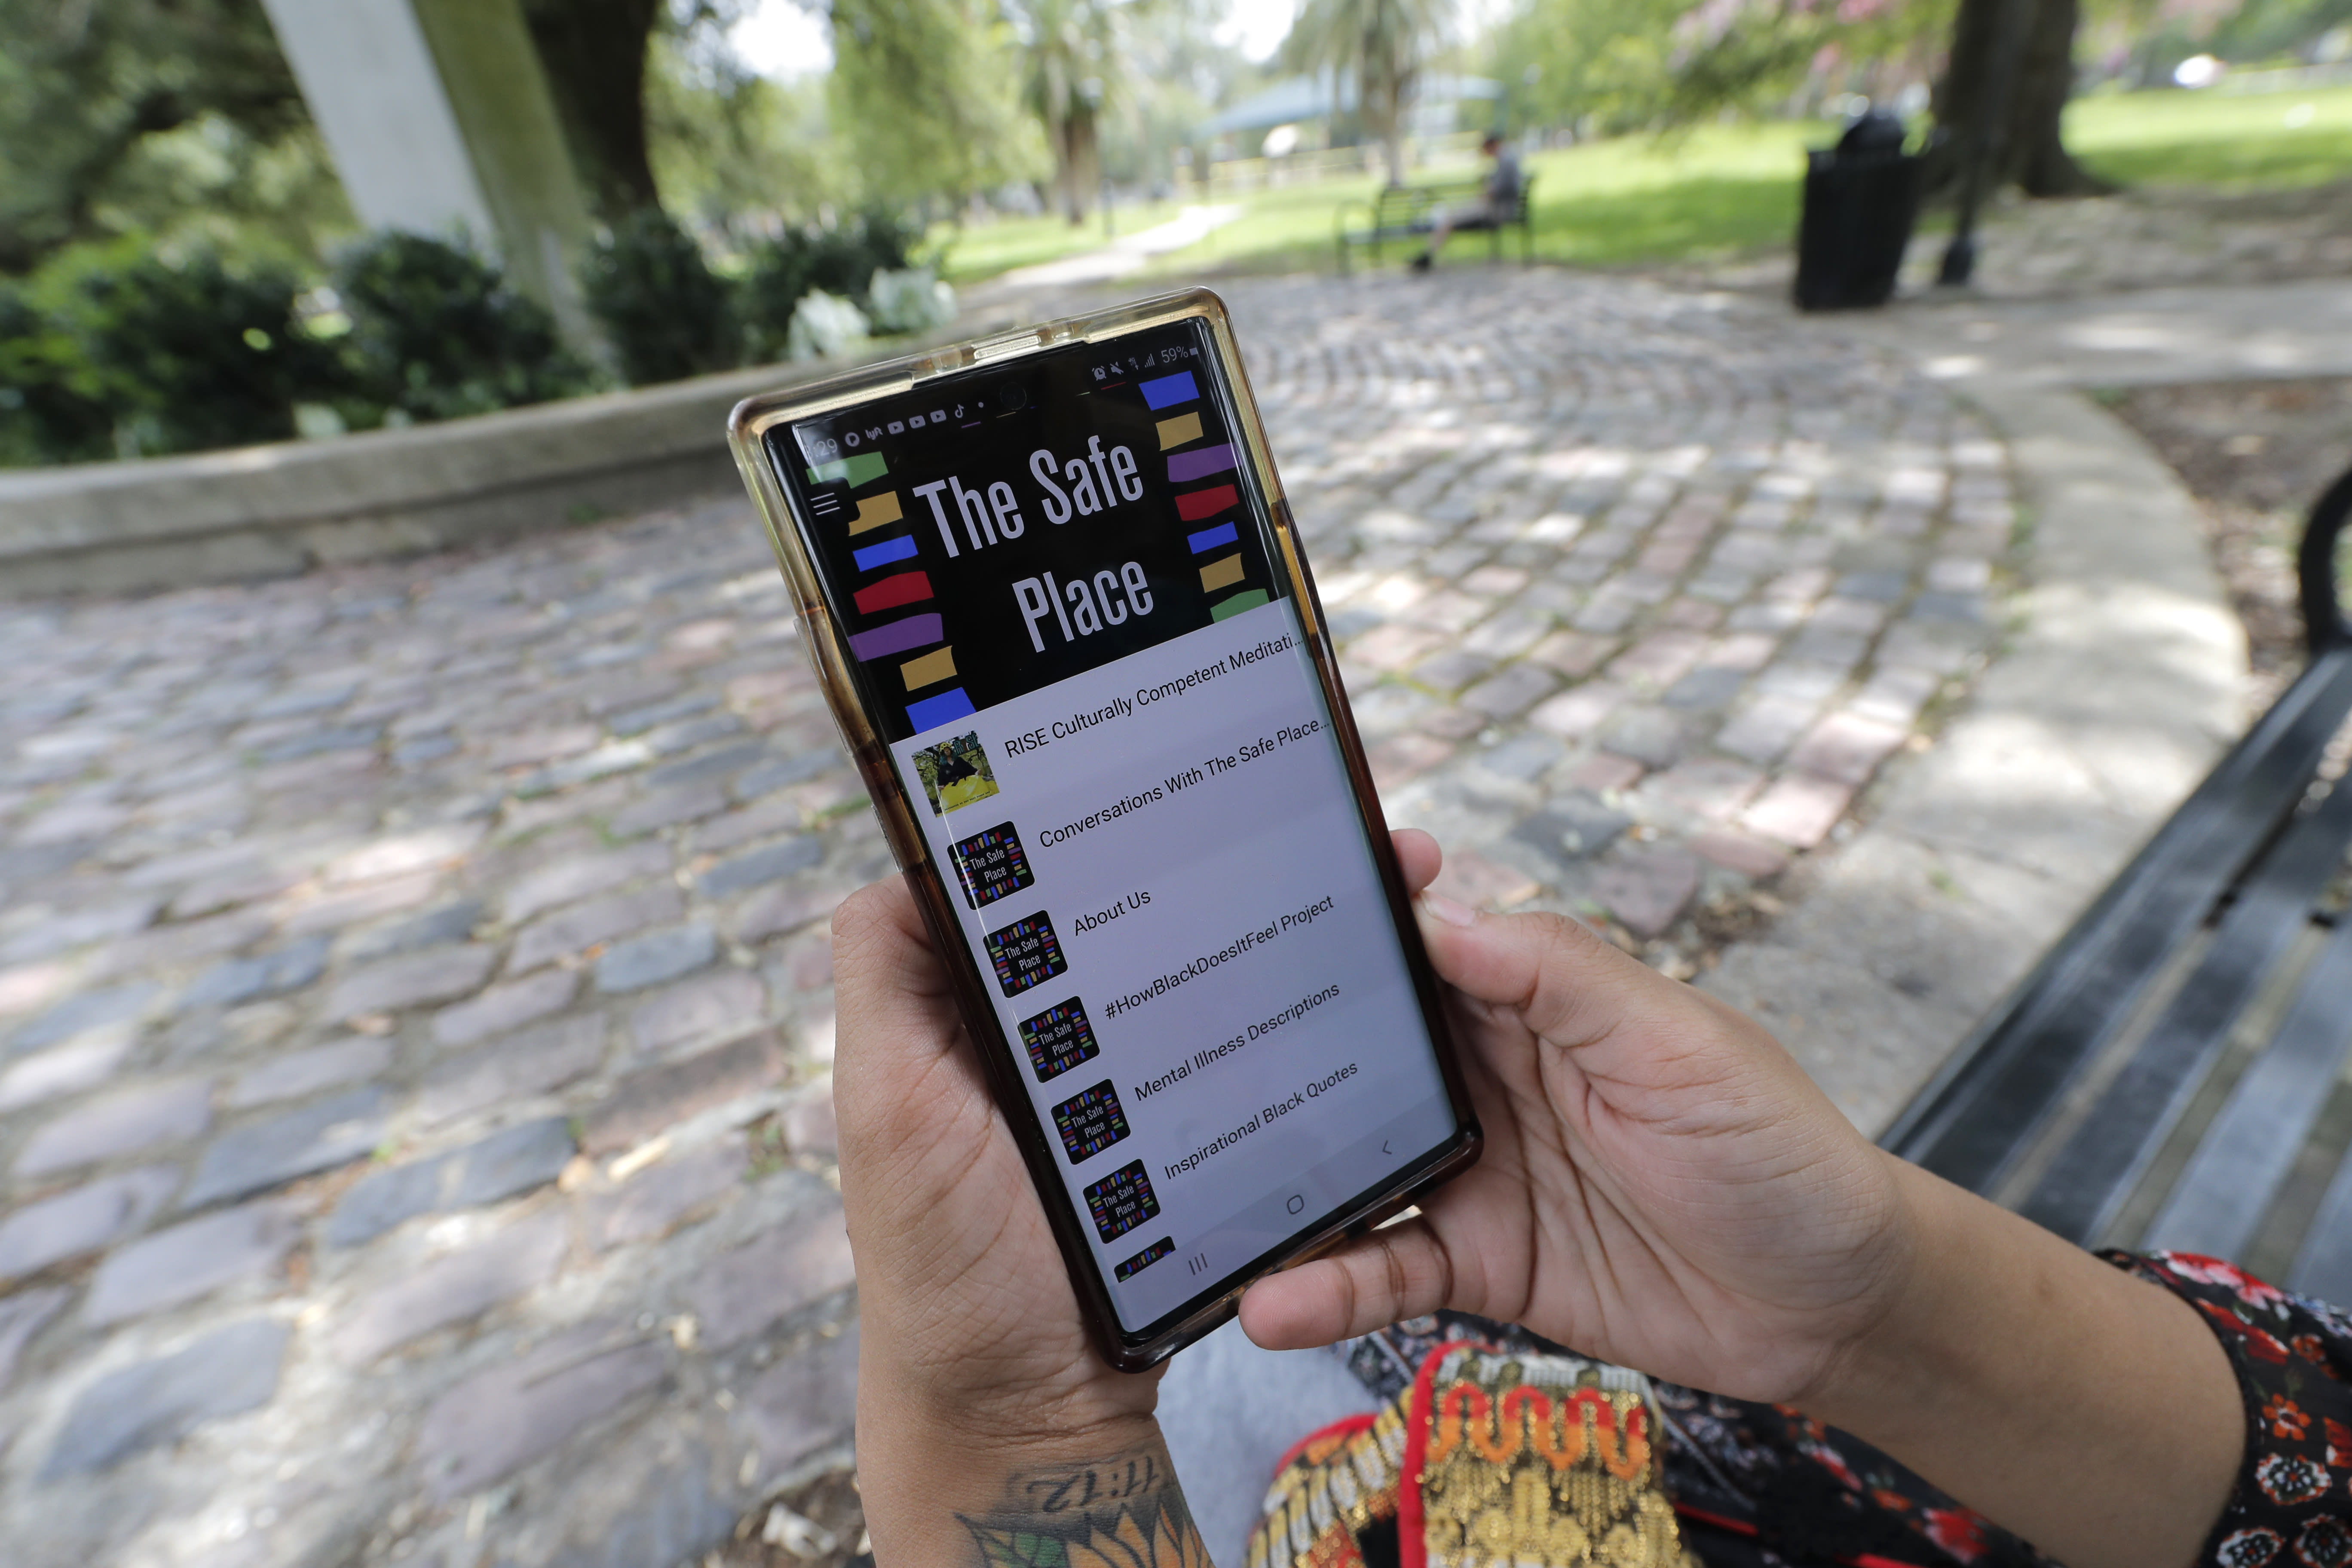 Jasmin Pierre poses for a photo with her smartphone app, in New Orleans, Thursday, July 2, 2020. Pierre, who survived multiple suicide attempts, doesn't want people struggling alone. She created The Safe Place, a free Black-oriented mental health app that's seen more signups during the pandemic. (AP Photo/Gerald Herbert)